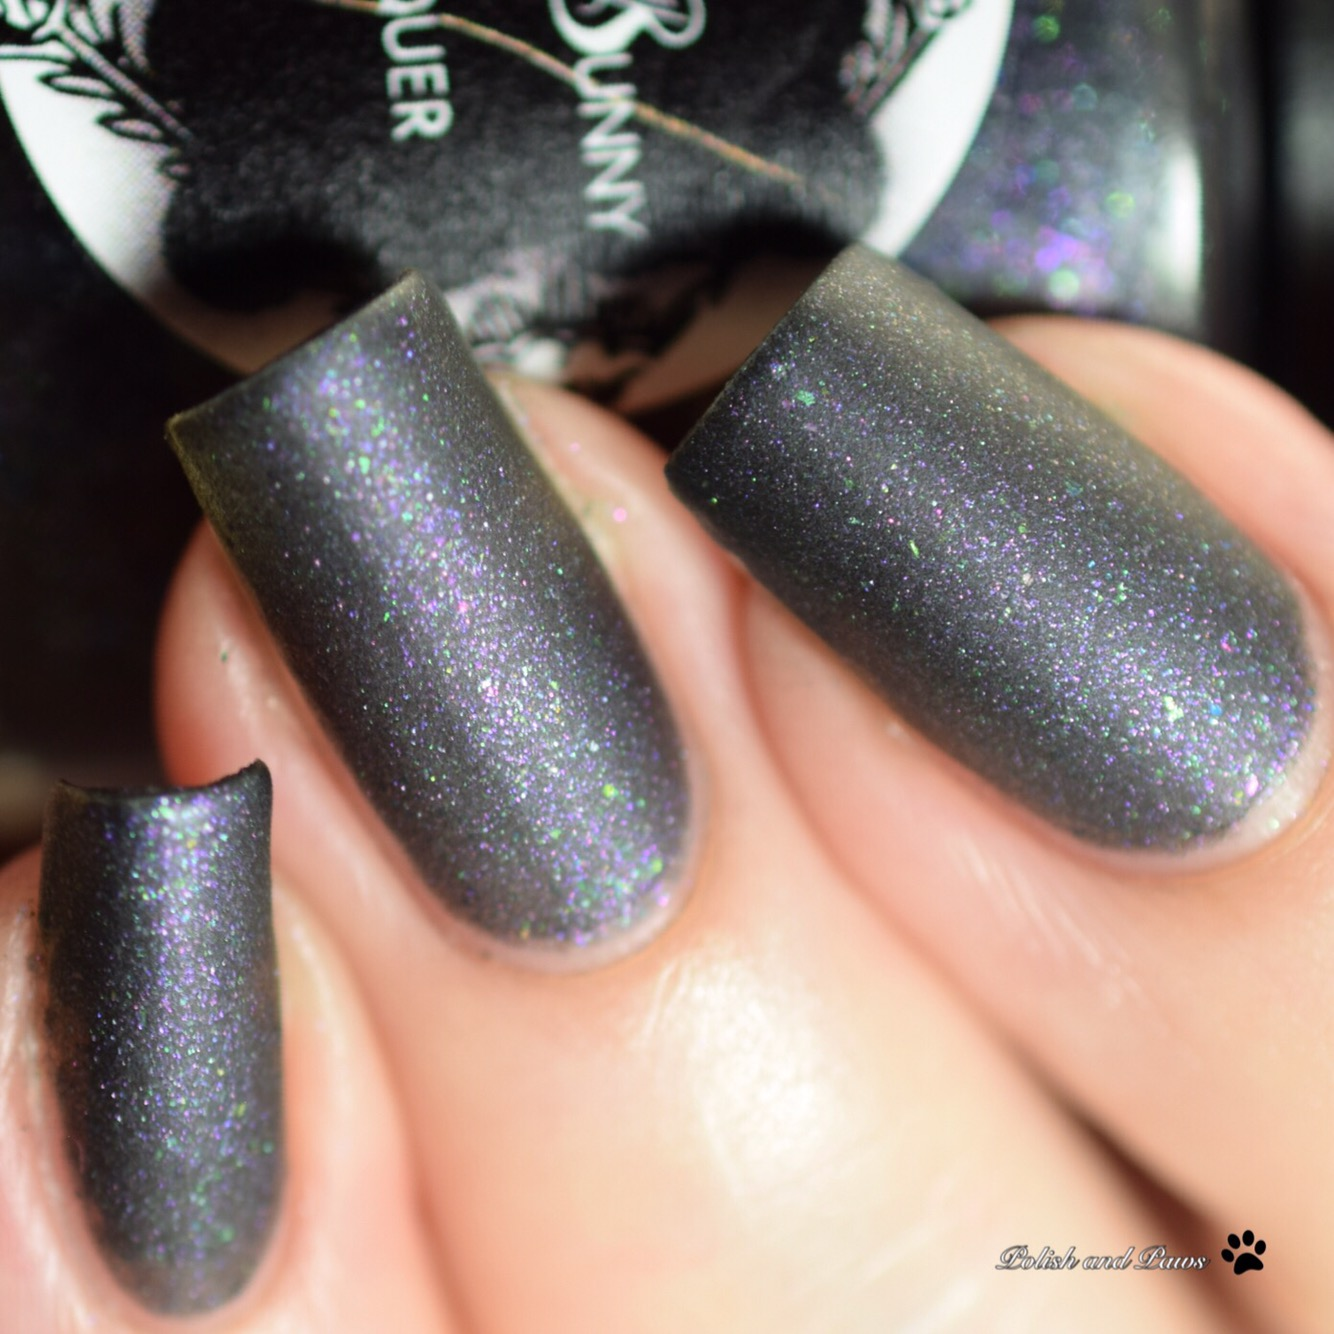 Honey Bunny Lacquer We're All Made of Stars